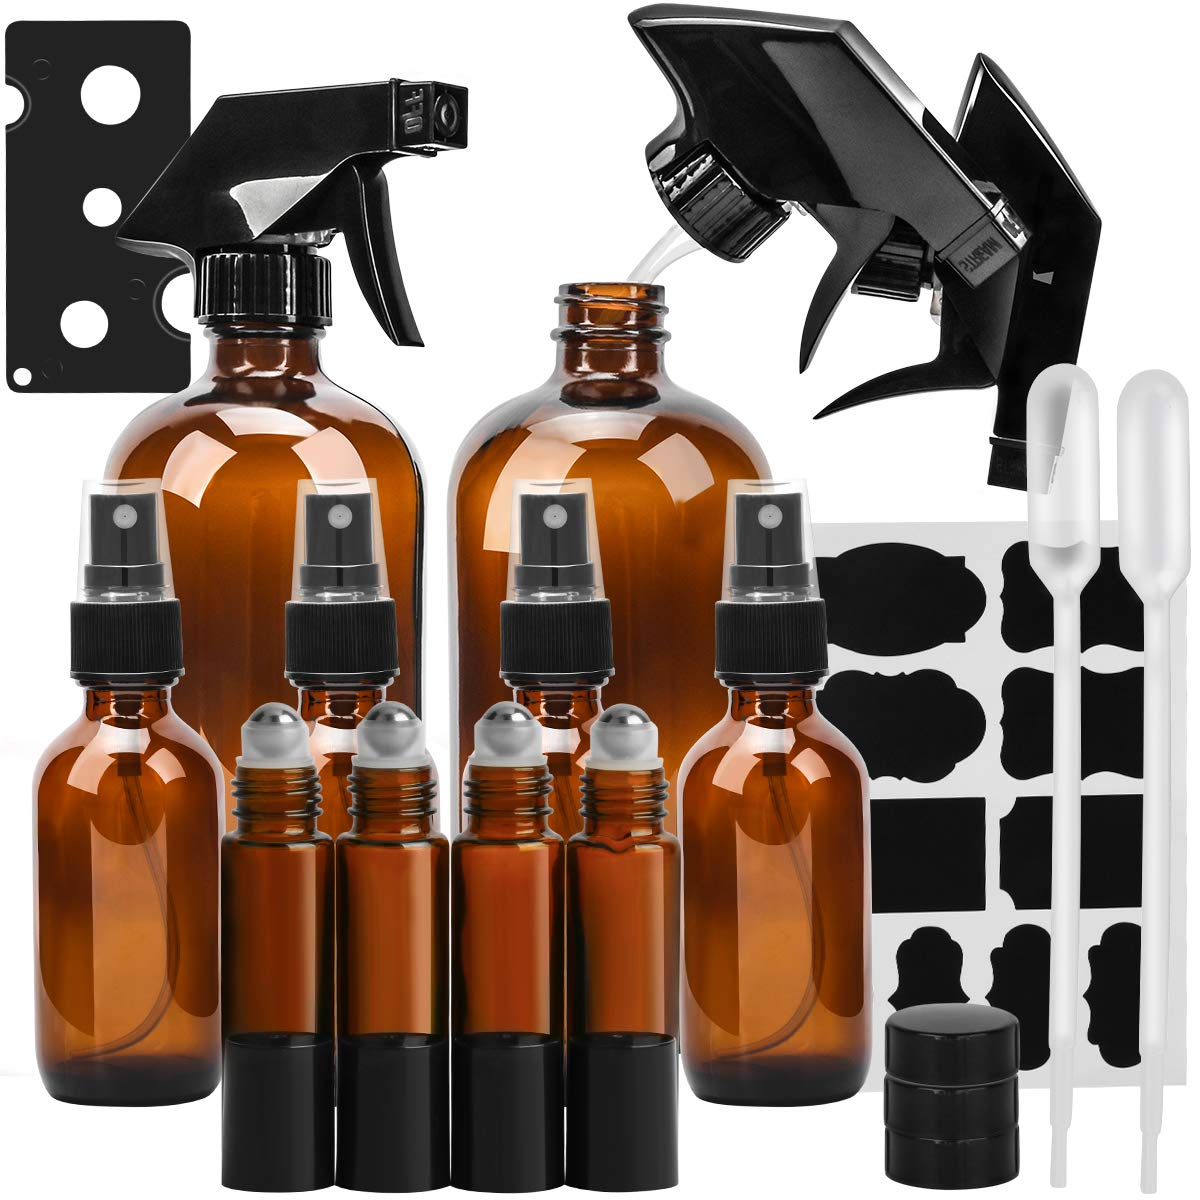 c945310384ab Glass Spray Bottle, KAMOTA Amber Glass Spray Bottles Set Refillable  Container for Essential Oils, Cleaning...